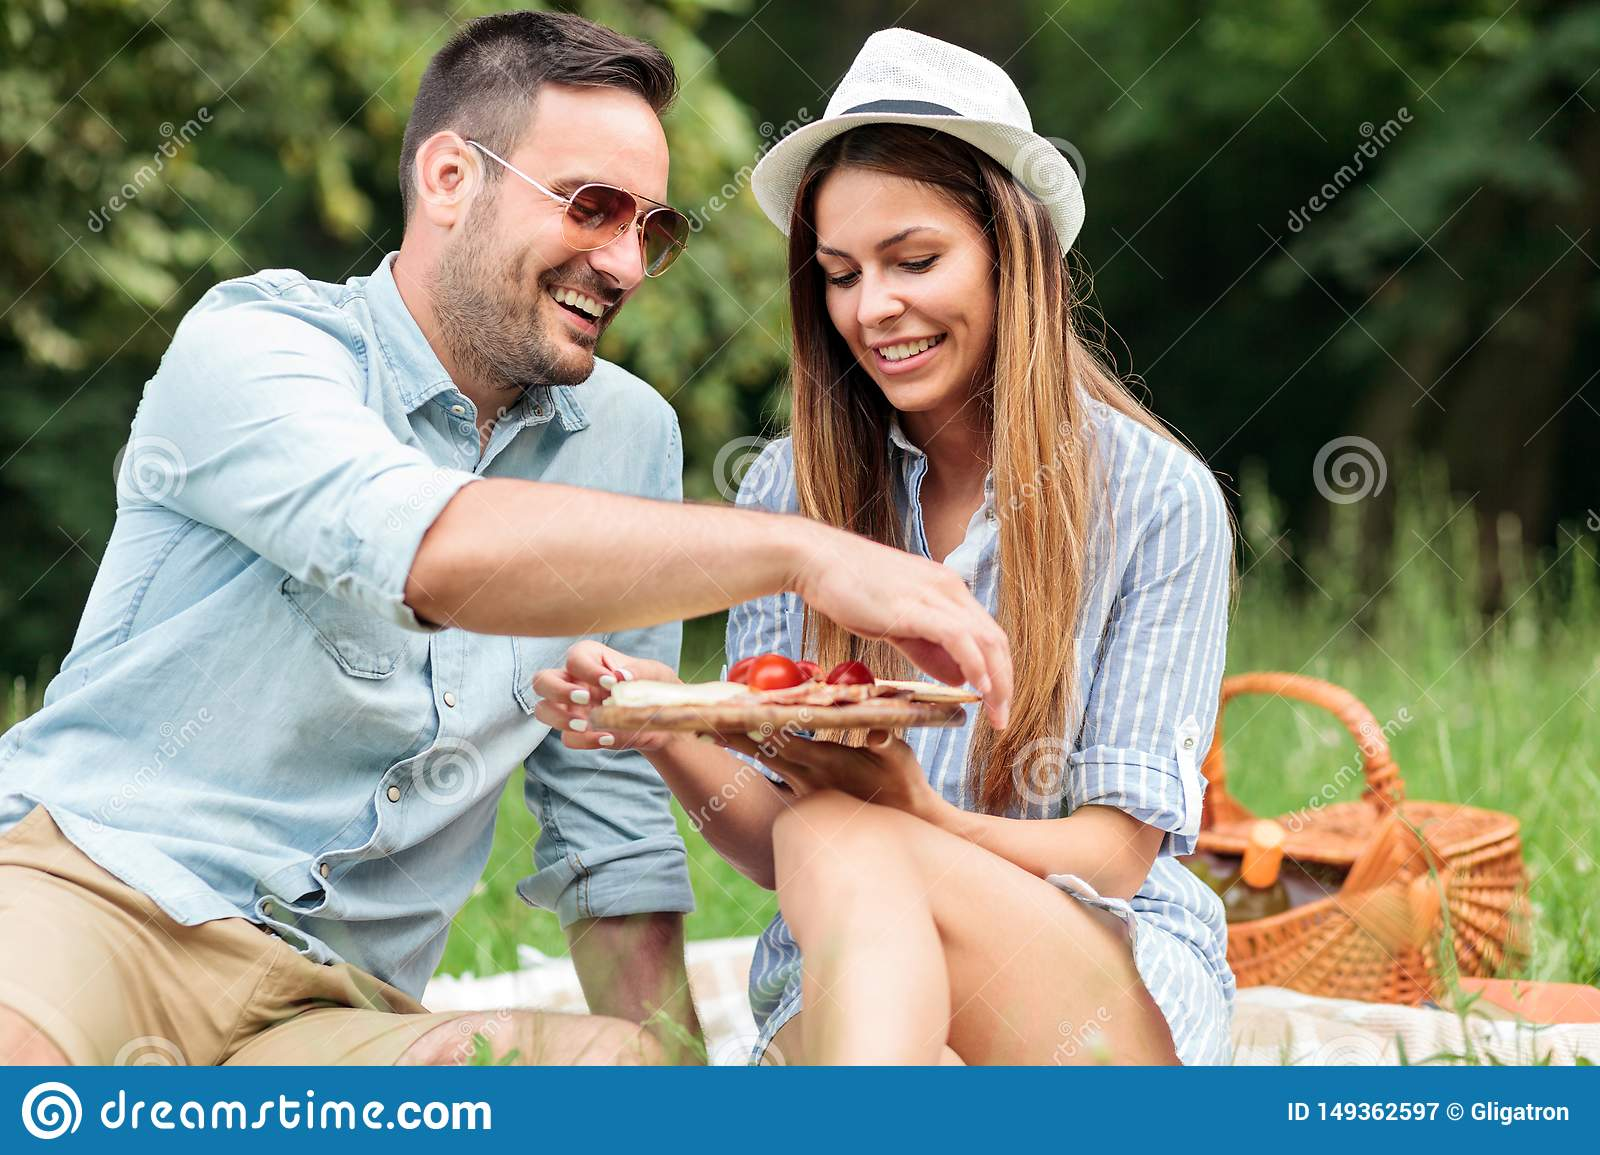 Smiling happy young couple enjoying their time in a park, having a casual romantic picnic